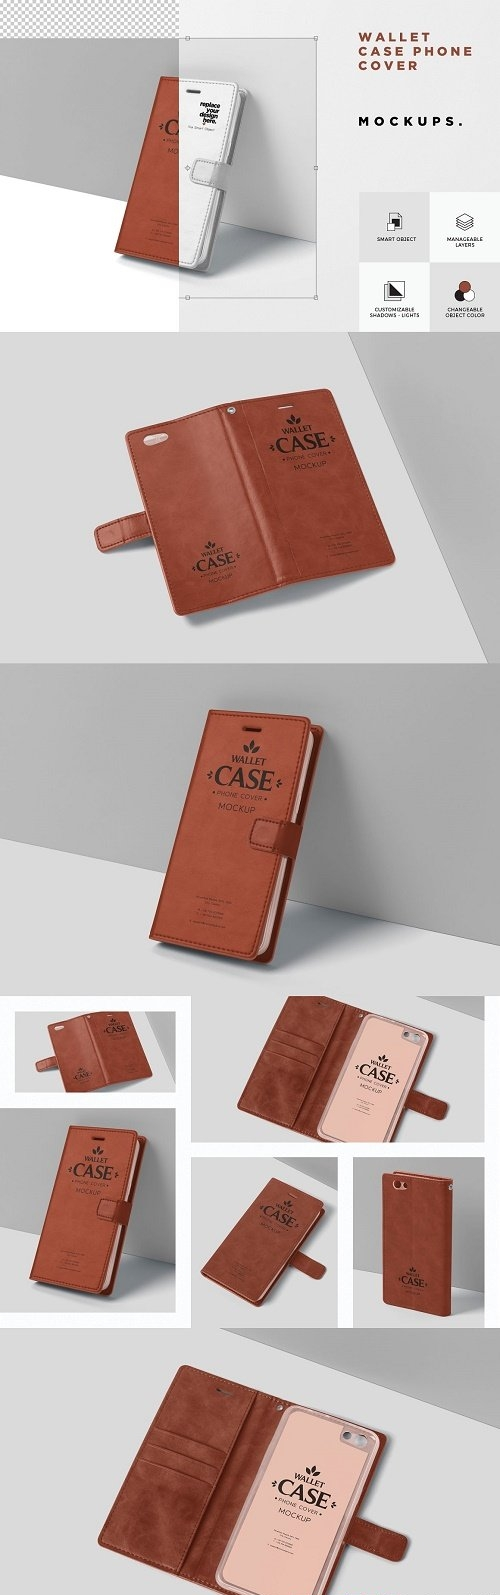 Wallet Case Phone Cover Mockup - 6072990